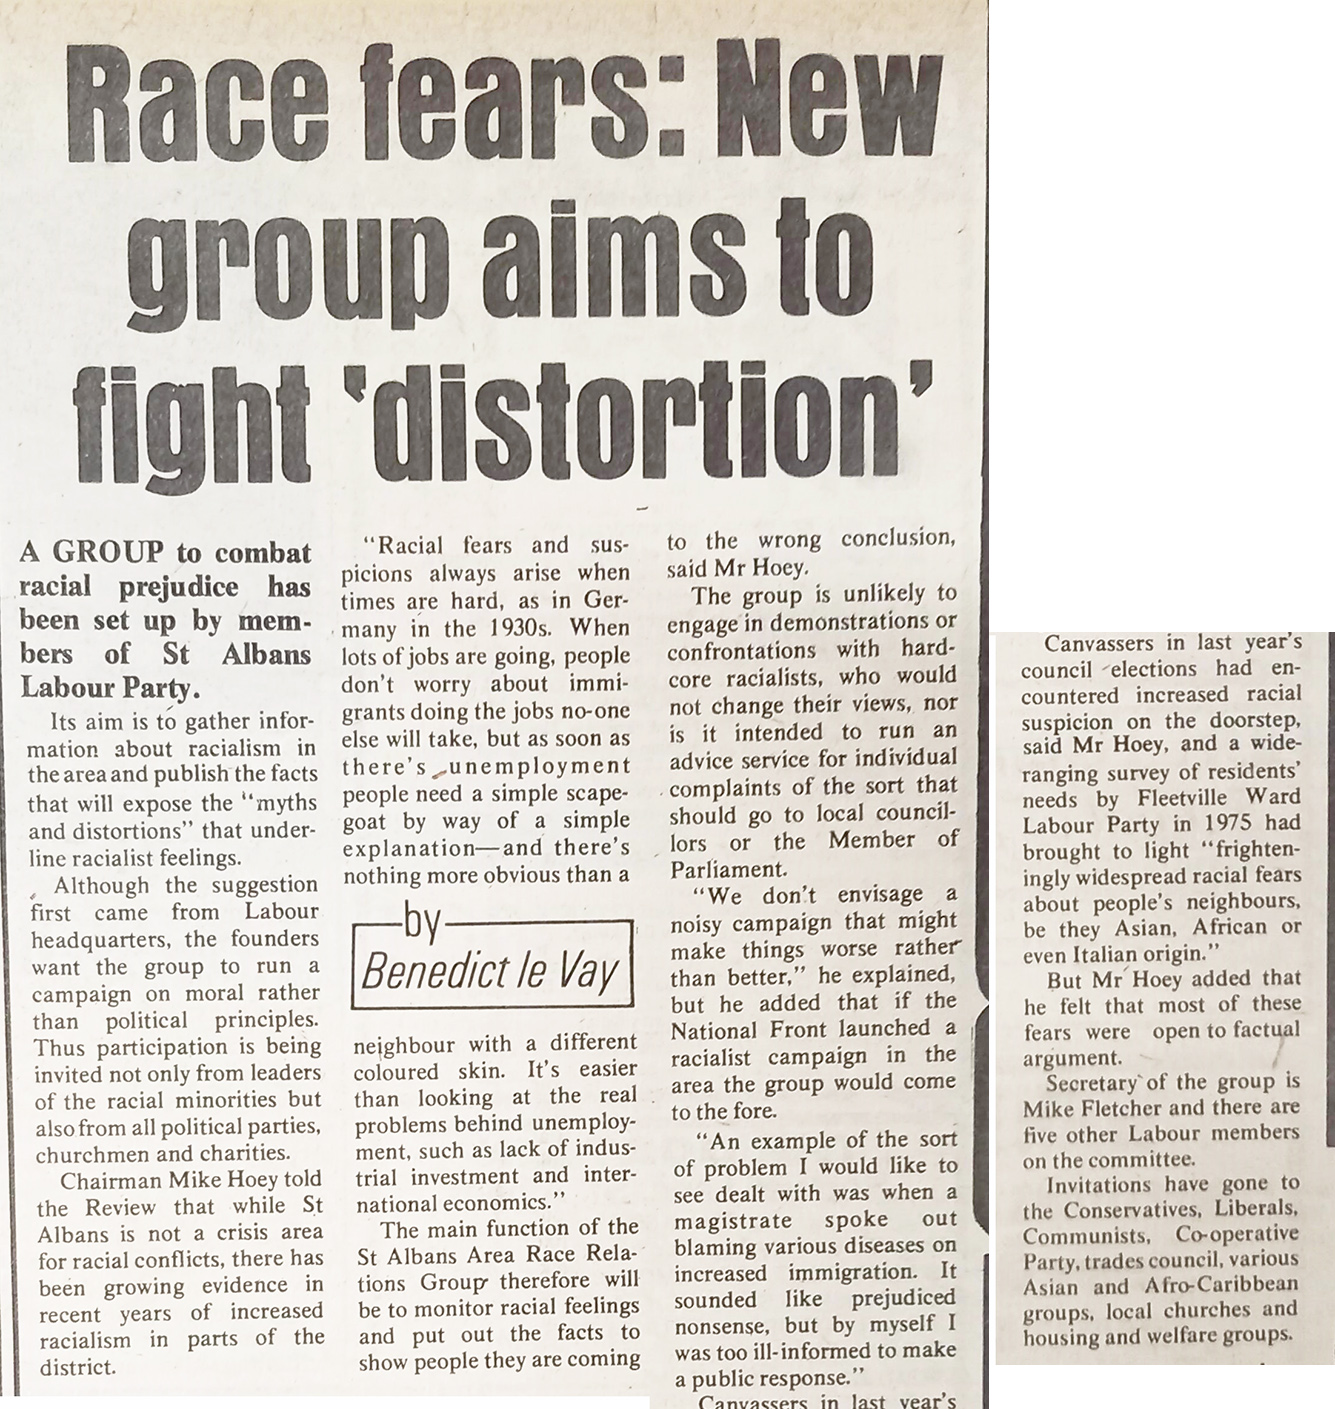 Newspaper article on st albans race relations council | St Albans, Welwyn Garden City and Hatfield Review, 13 January 1977